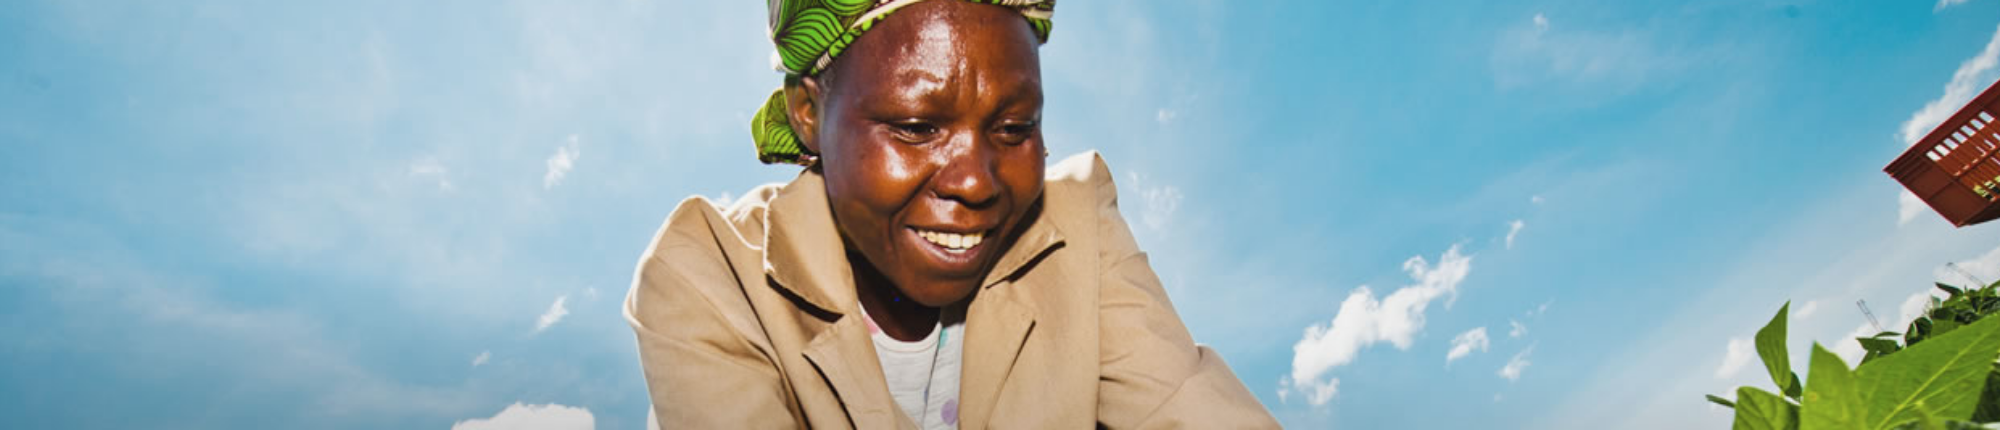 See the impact of the Rabo Foundation firsthand